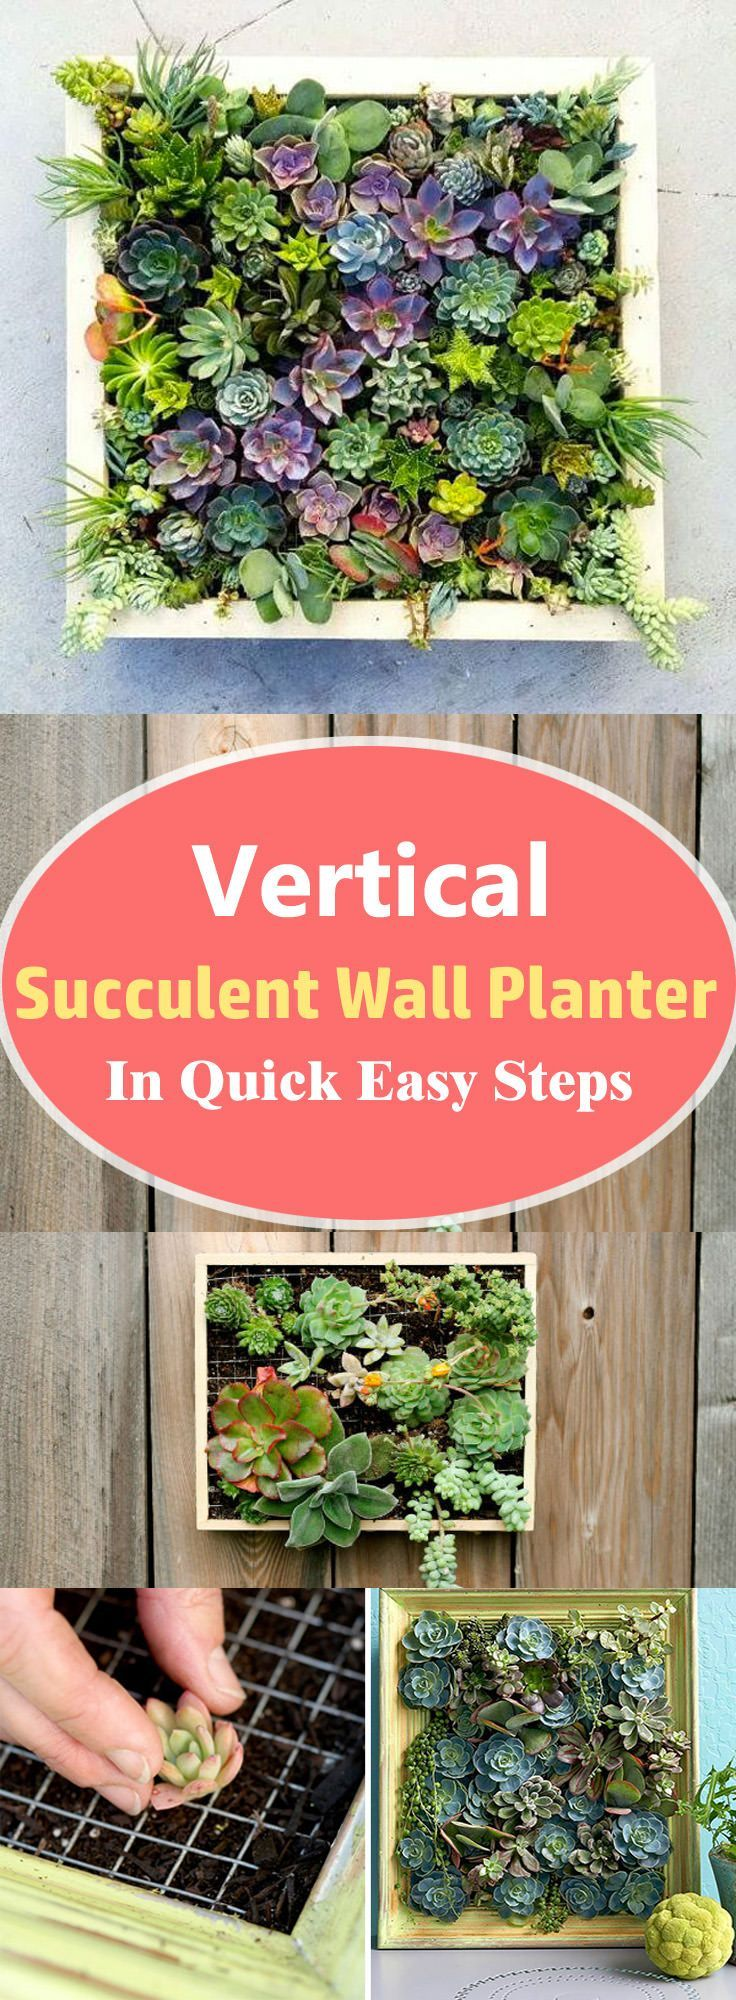 Best 25+ Outdoor wall planters ideas on Pinterest | Succulent wall ...